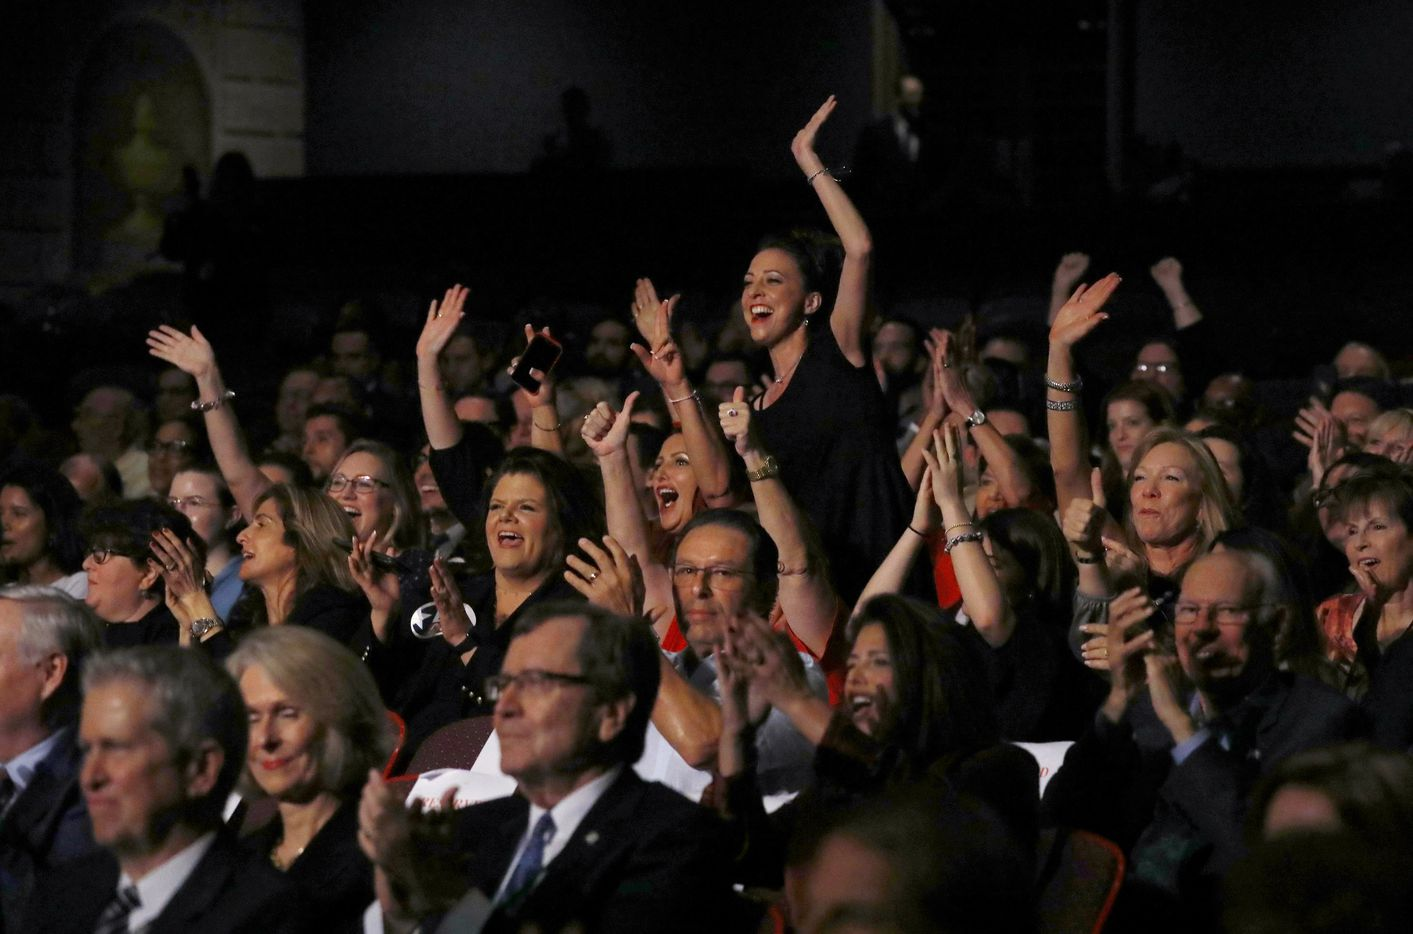 People cheer as Rep. Beto O'Rourke (D-TX) and Sen. Ted Cruz (R-TX) debate at McFarlin Auditorium at SMU in Dallas, on  Friday, September 21, 2018.